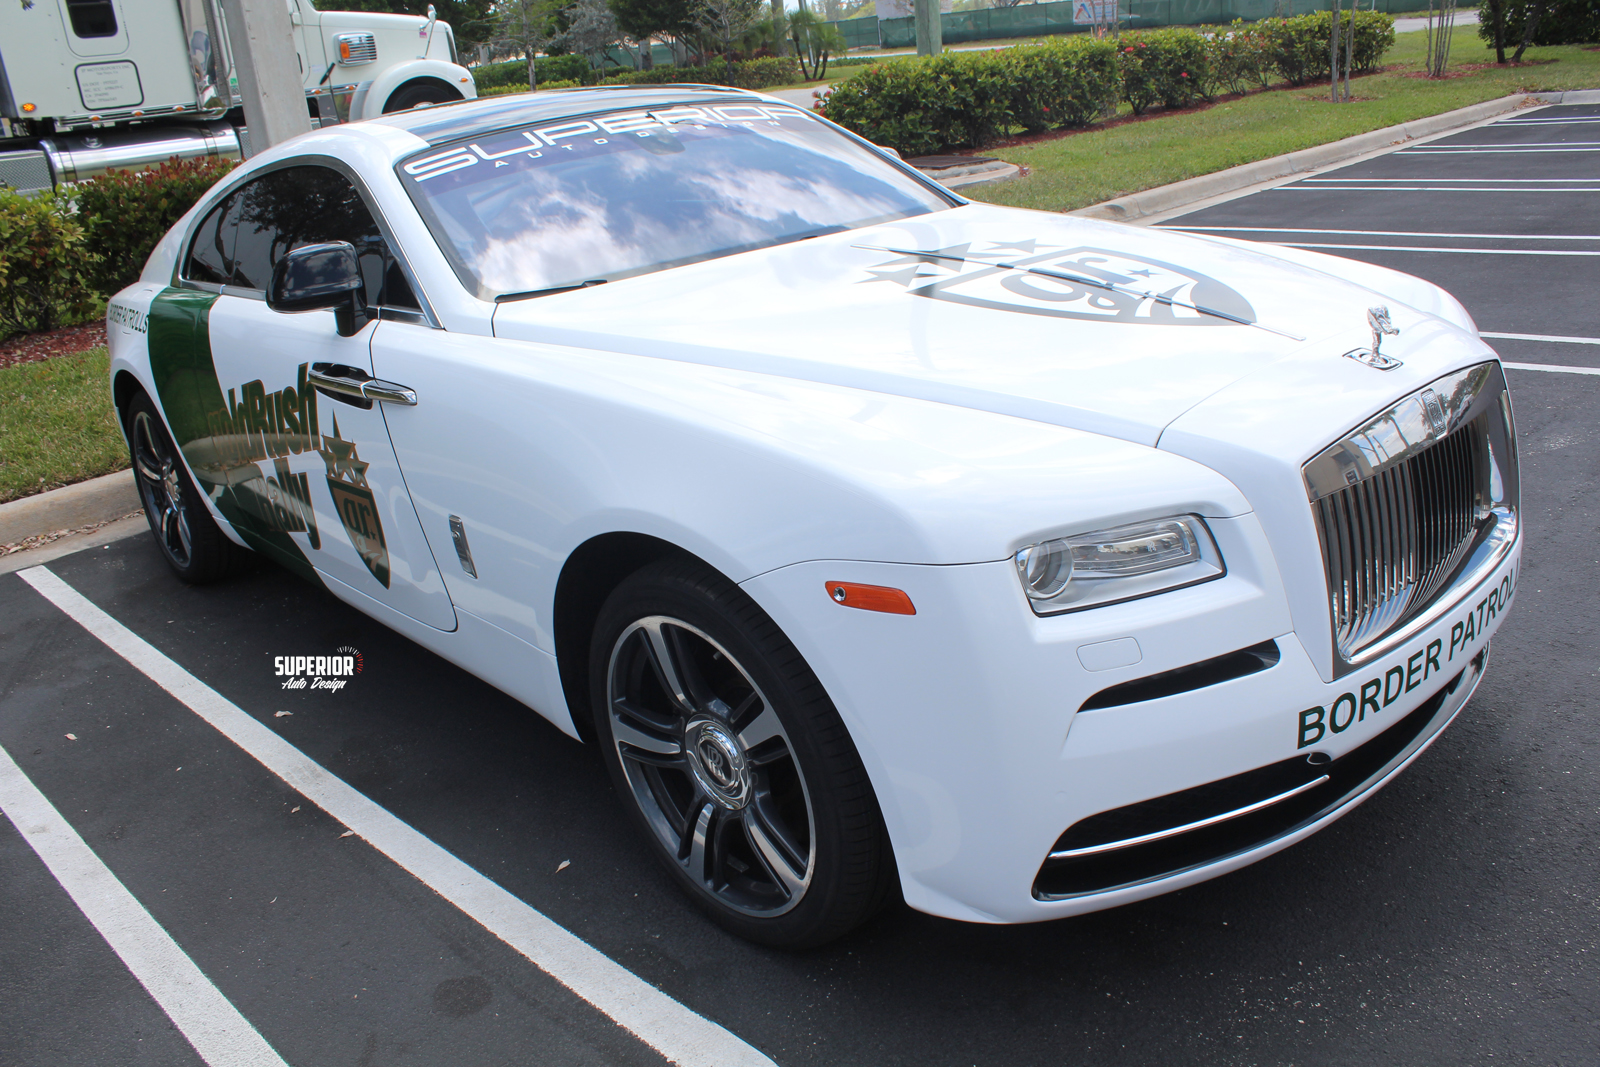 border patrolls rolls royce gold rush superior auto design 2